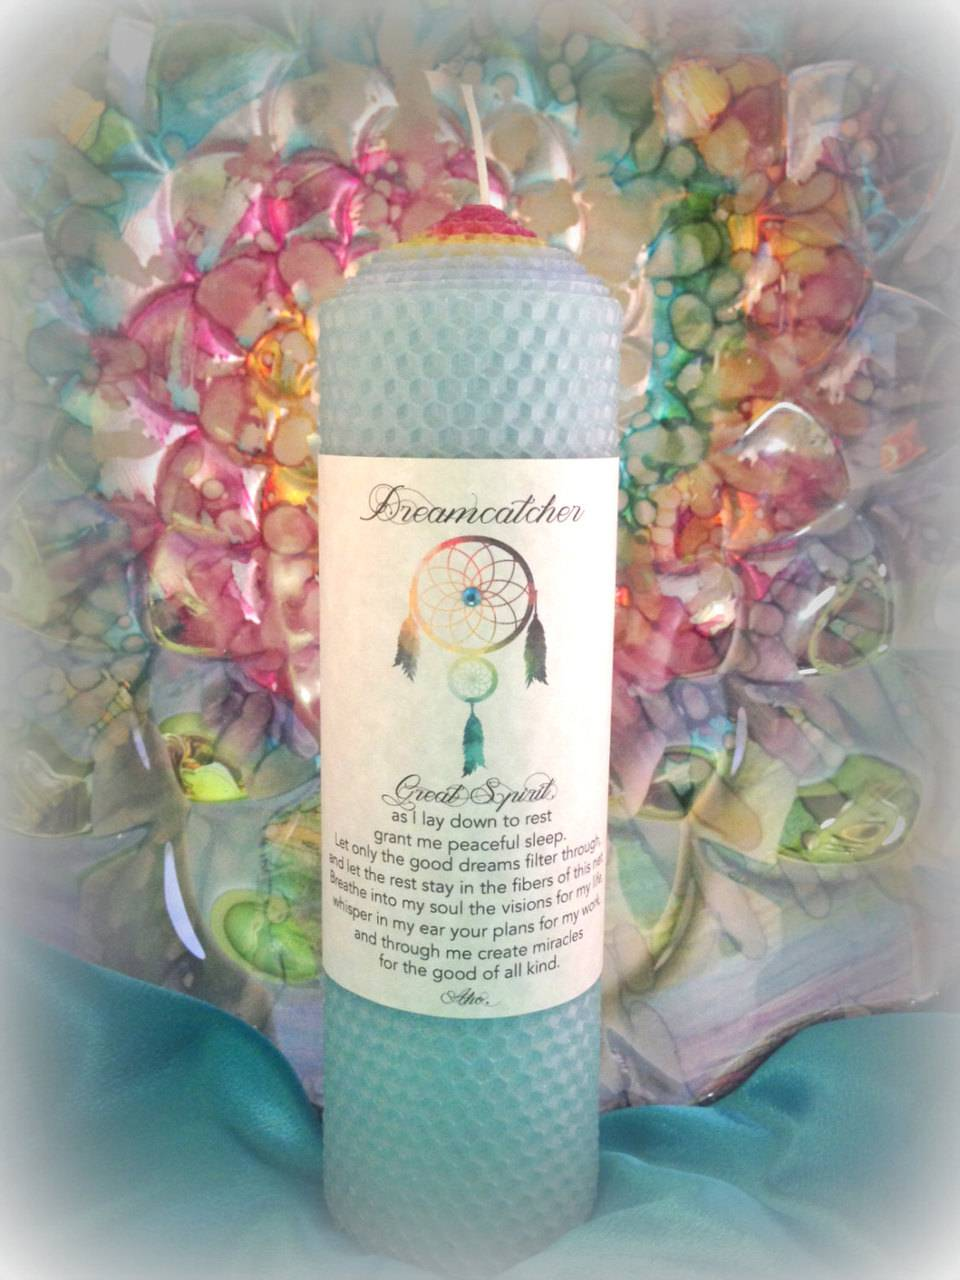 DREAMCATCHER candle - To keep at your bedside for peaceful sleep and protection while dreaming